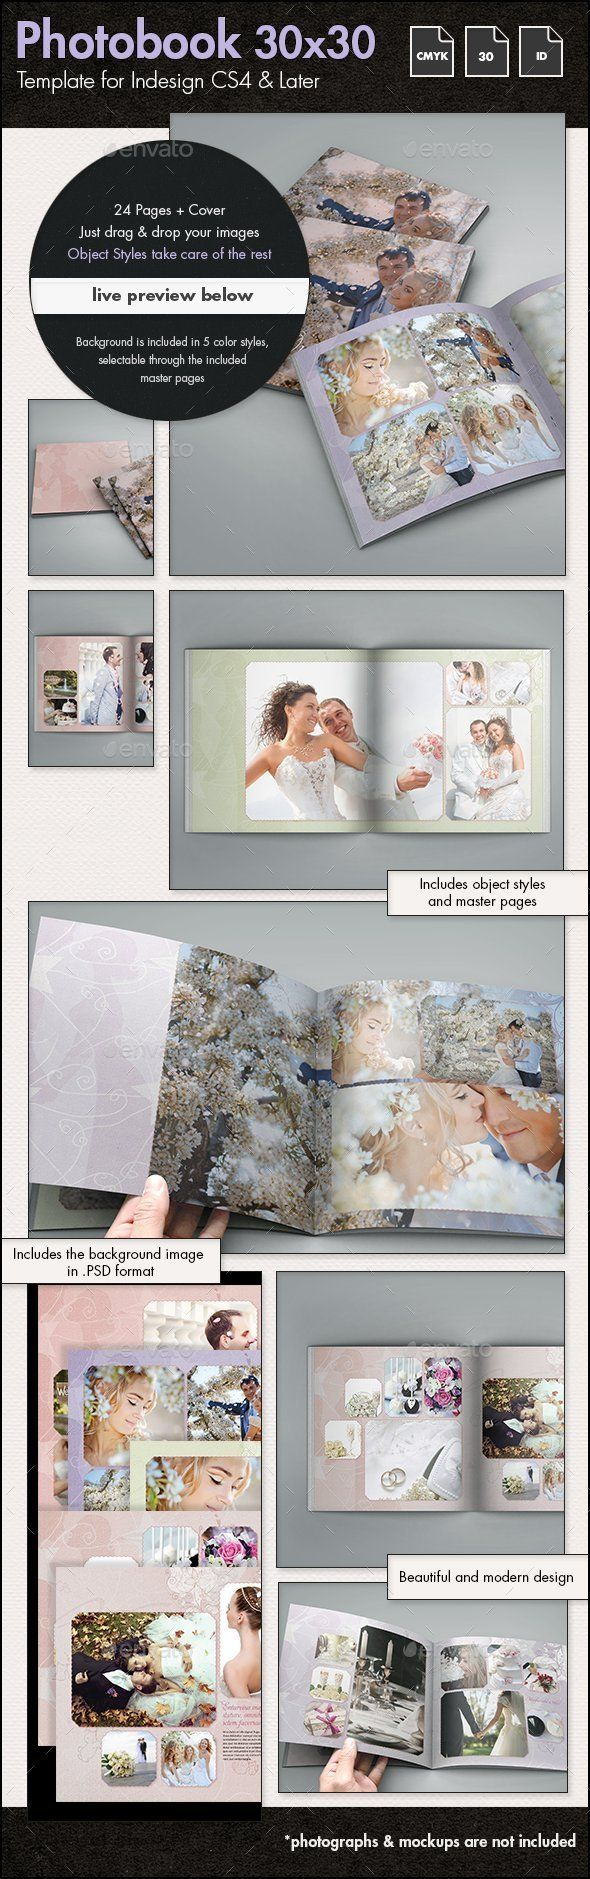 Photobook Wedding Album Template - 30x30cm